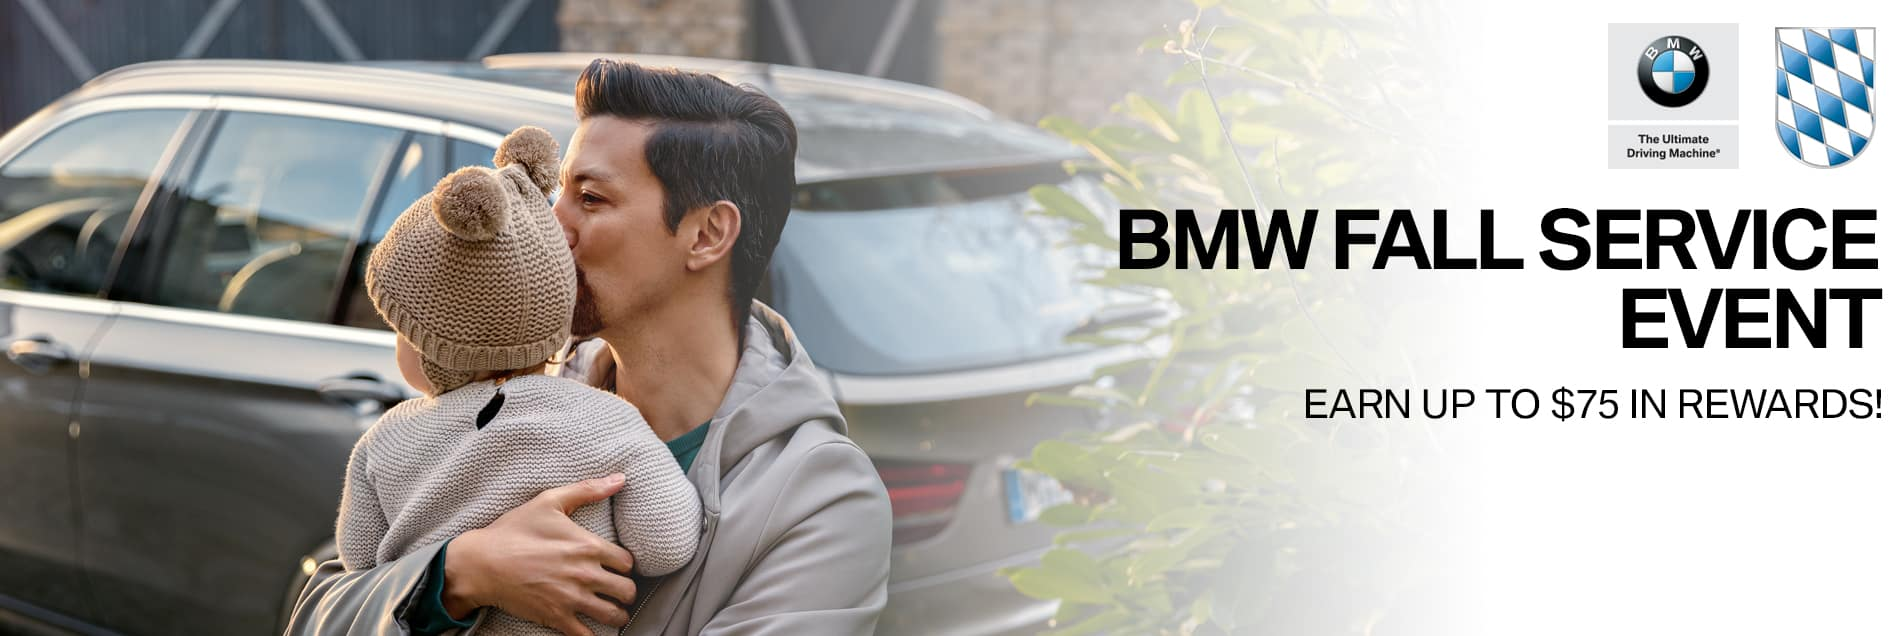 image regarding Bmw Coupons Printable referred to as Ottos BMW - Bmw company heart, Bmw oil variation close to me